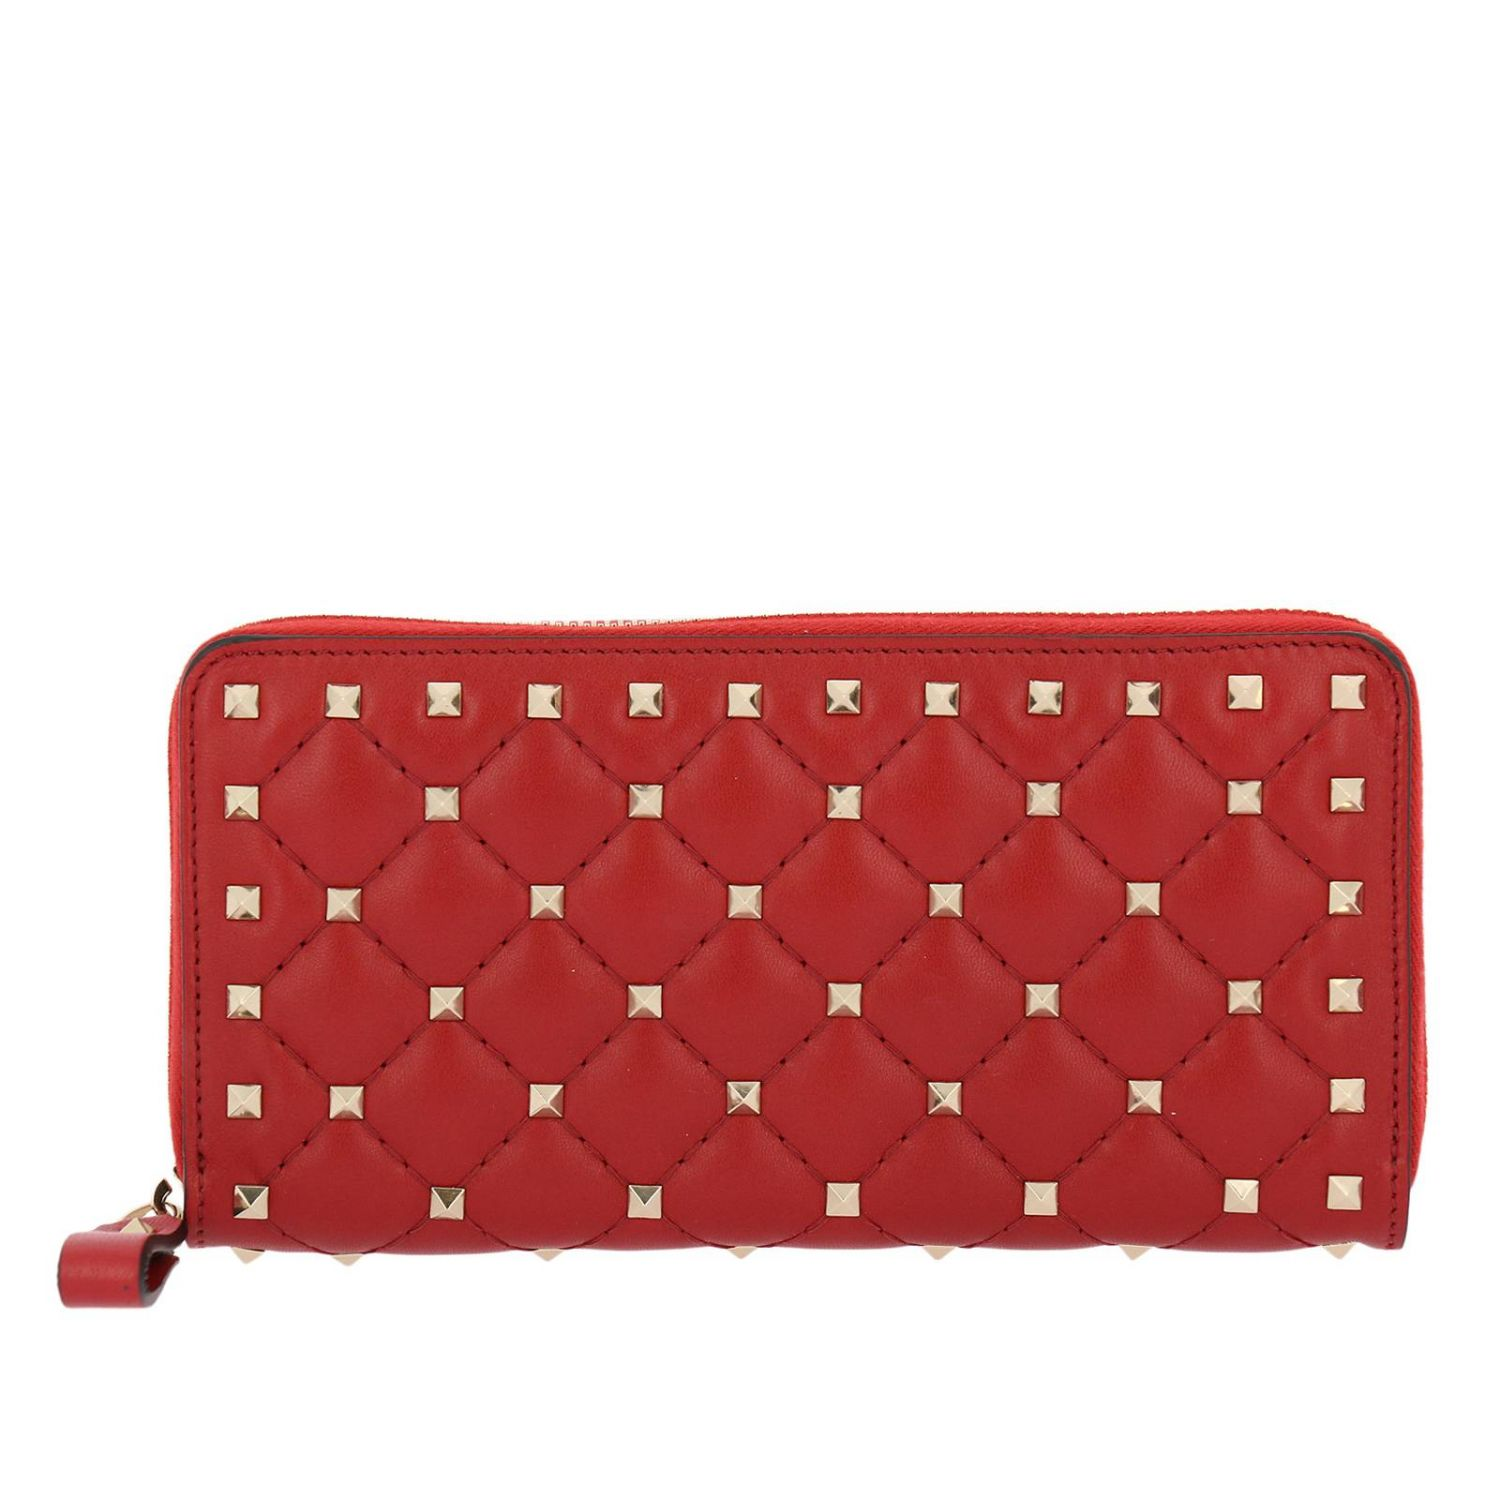 Wallet Rockstud Spike Zip Around Wallet In Quilted Leather With Metal Studs 8286842